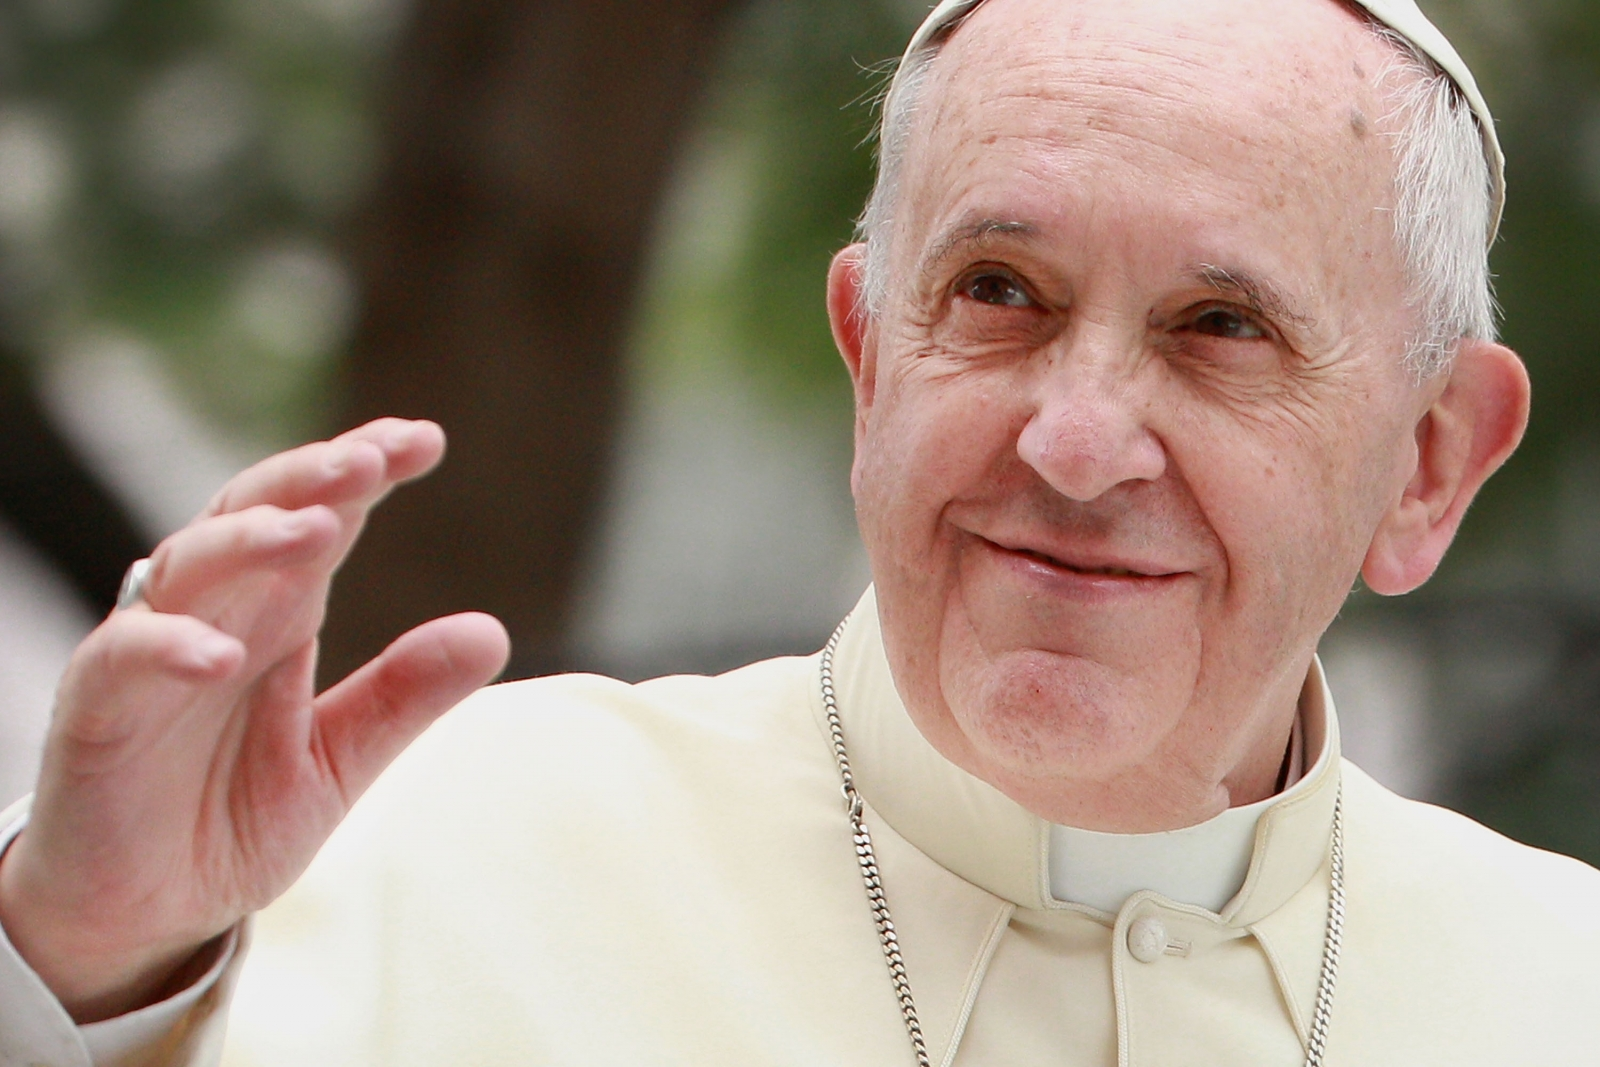 Pope Francis in personal calls with Spanish transexual